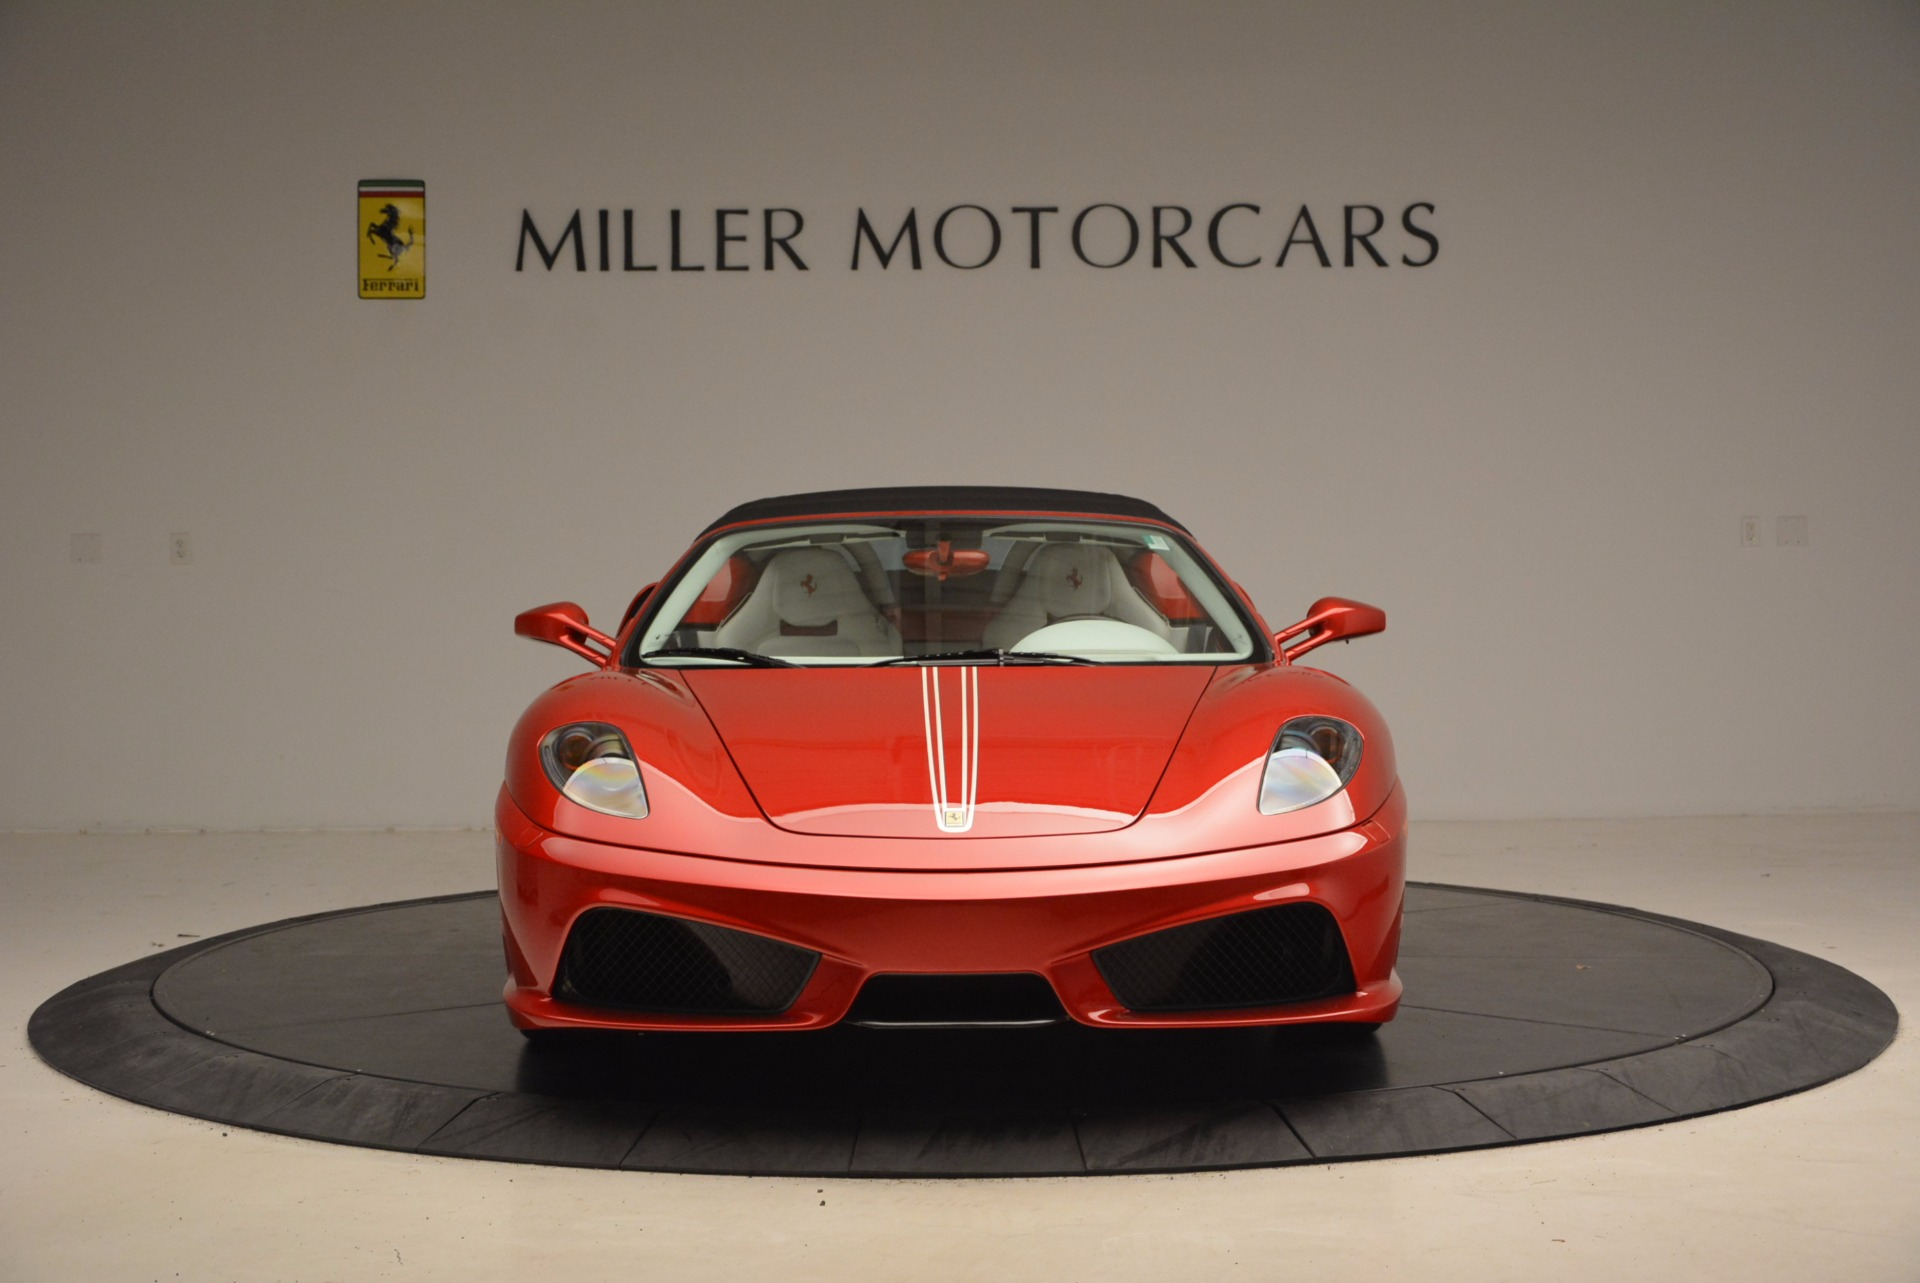 Used 2009 Ferrari F430 Scuderia 16M For Sale In Westport, CT 1398_p24